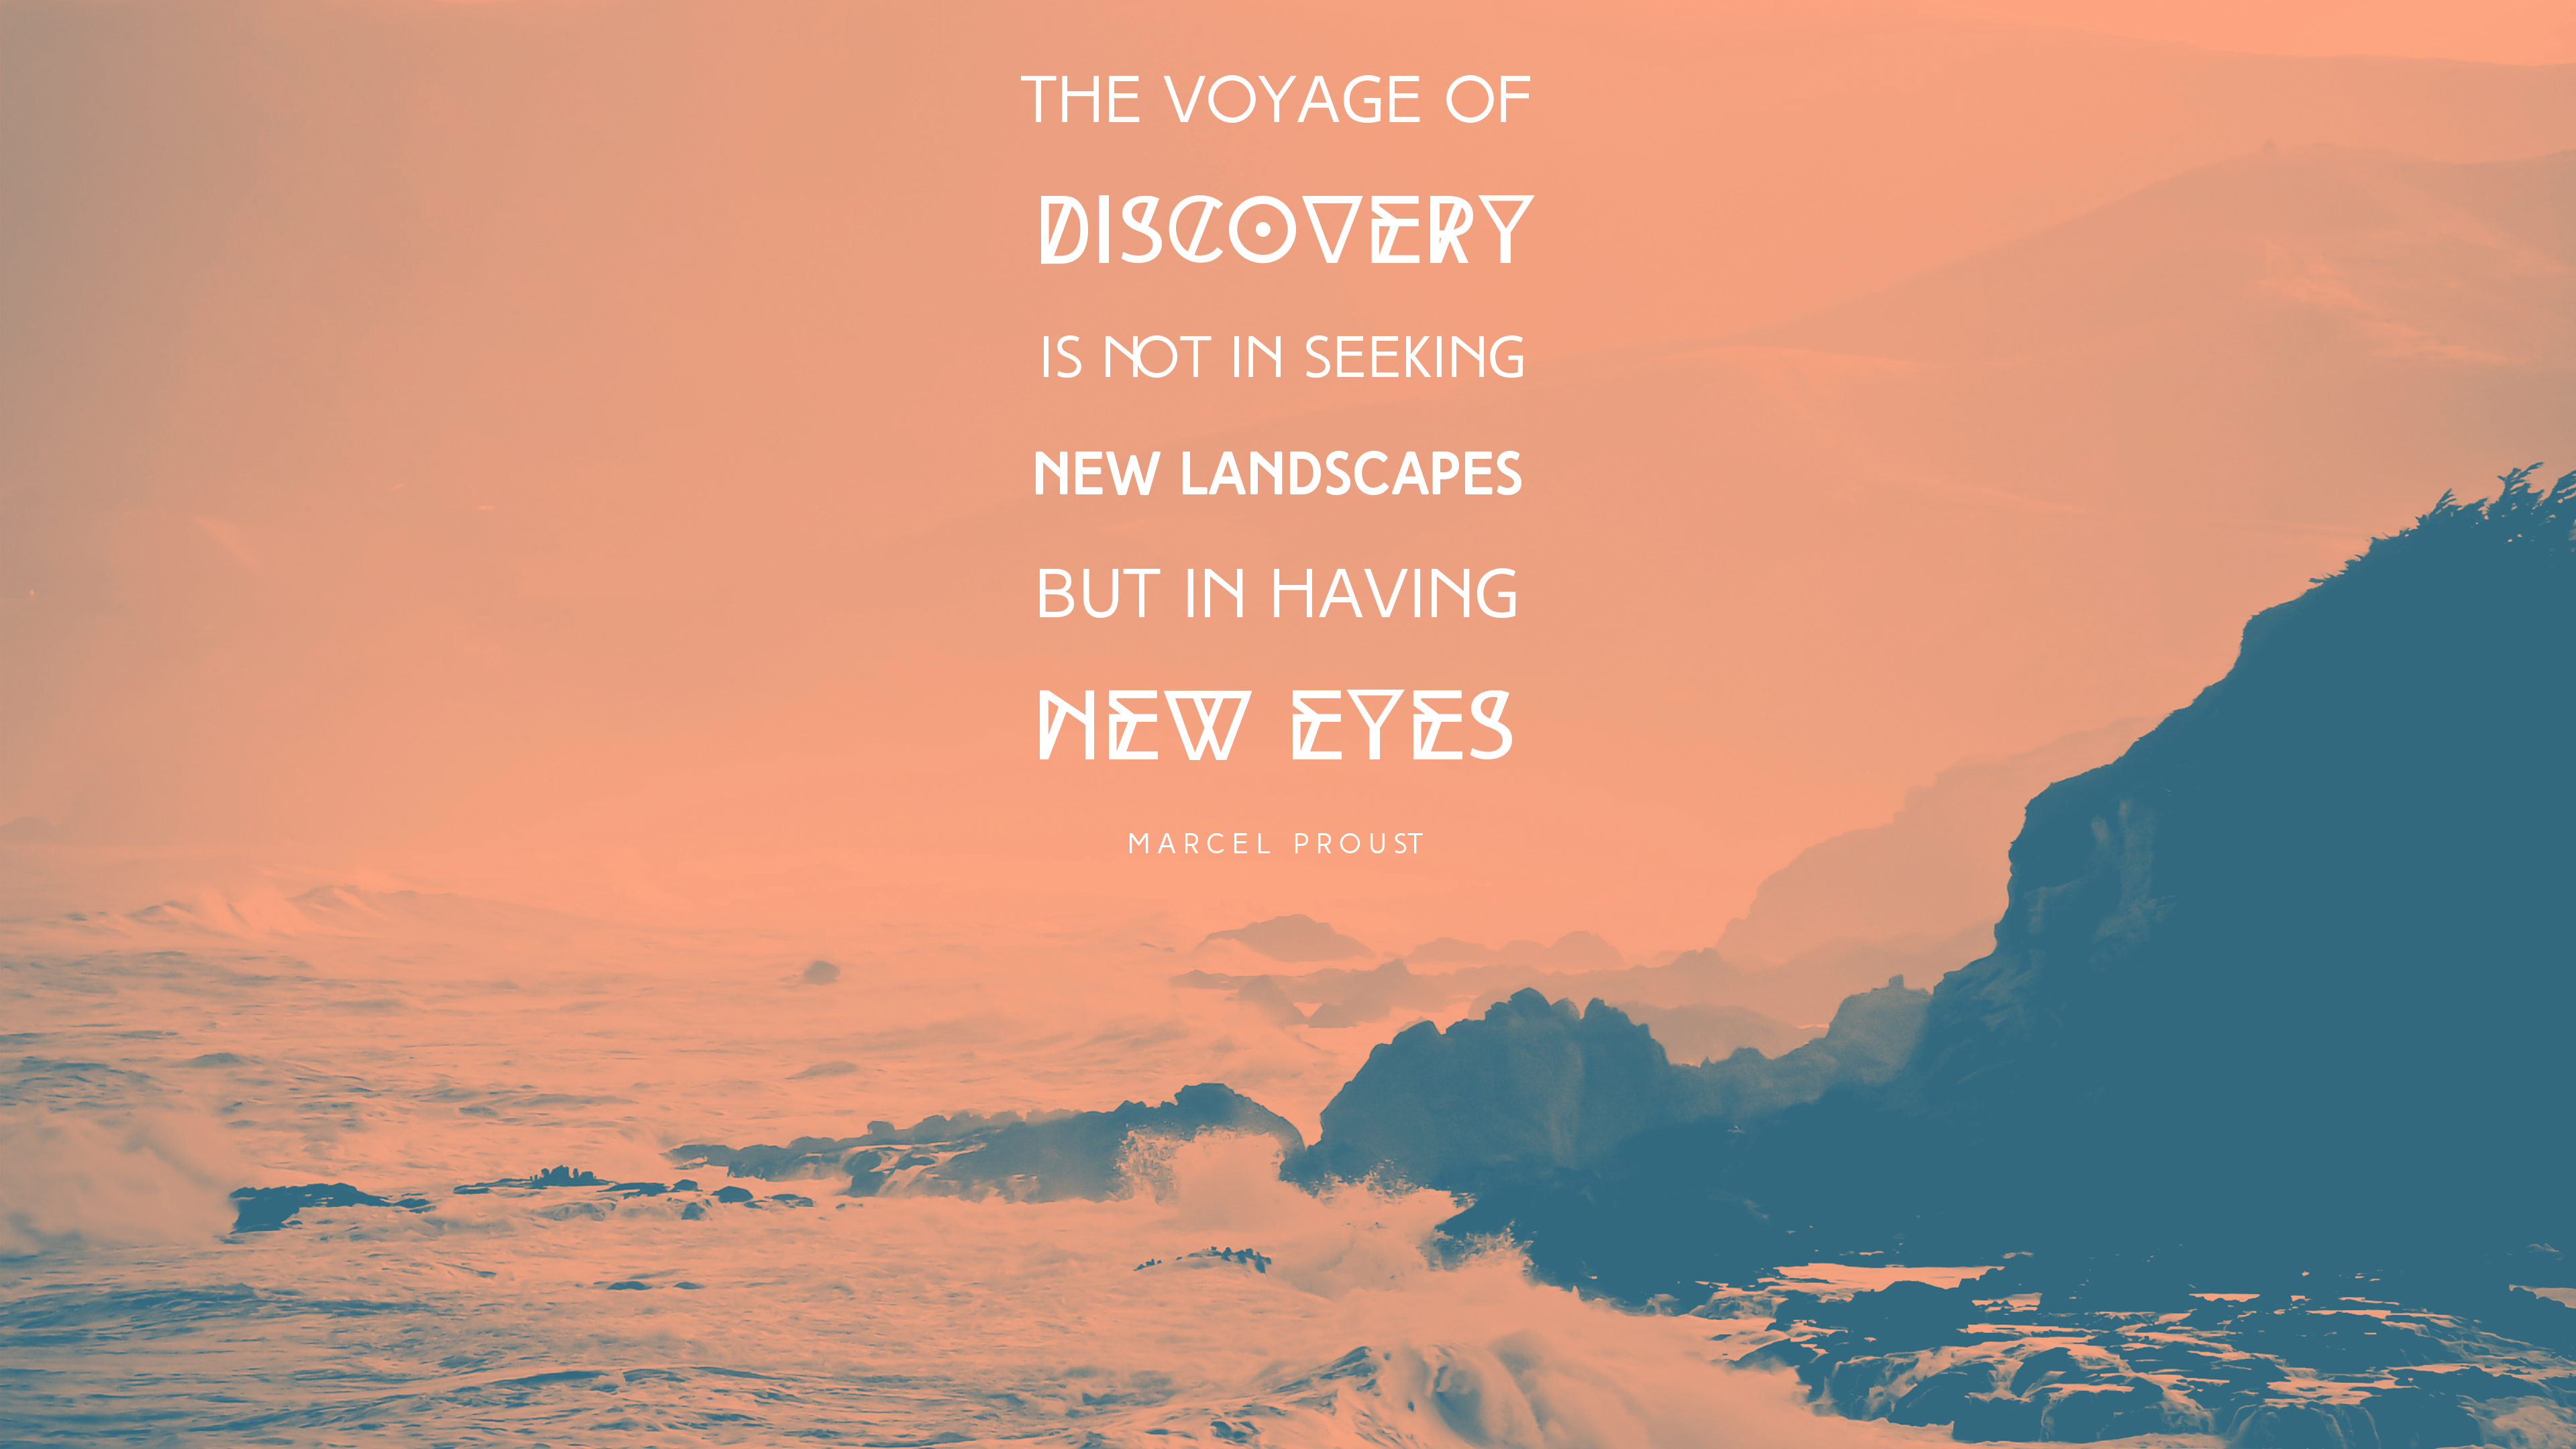 The voyage of discovery is not in seeing new landscapes but in having new eyes. Marcel P